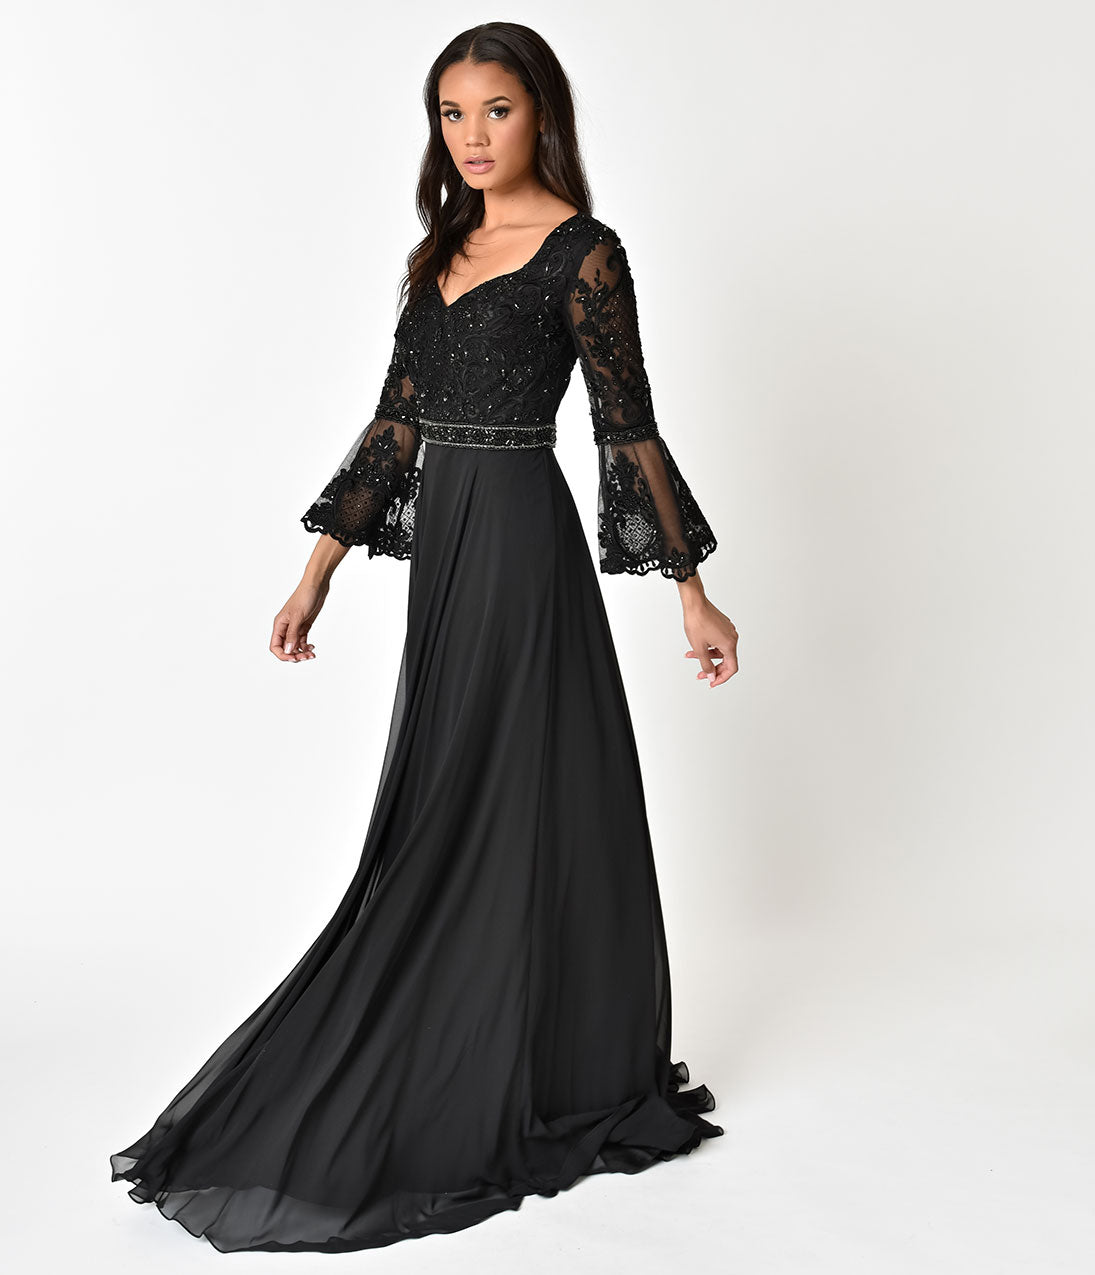 70s Prom, Formal, Evening, Party Dresses Black Beaded Bell Long Sleeve Gown $168.00 AT vintagedancer.com